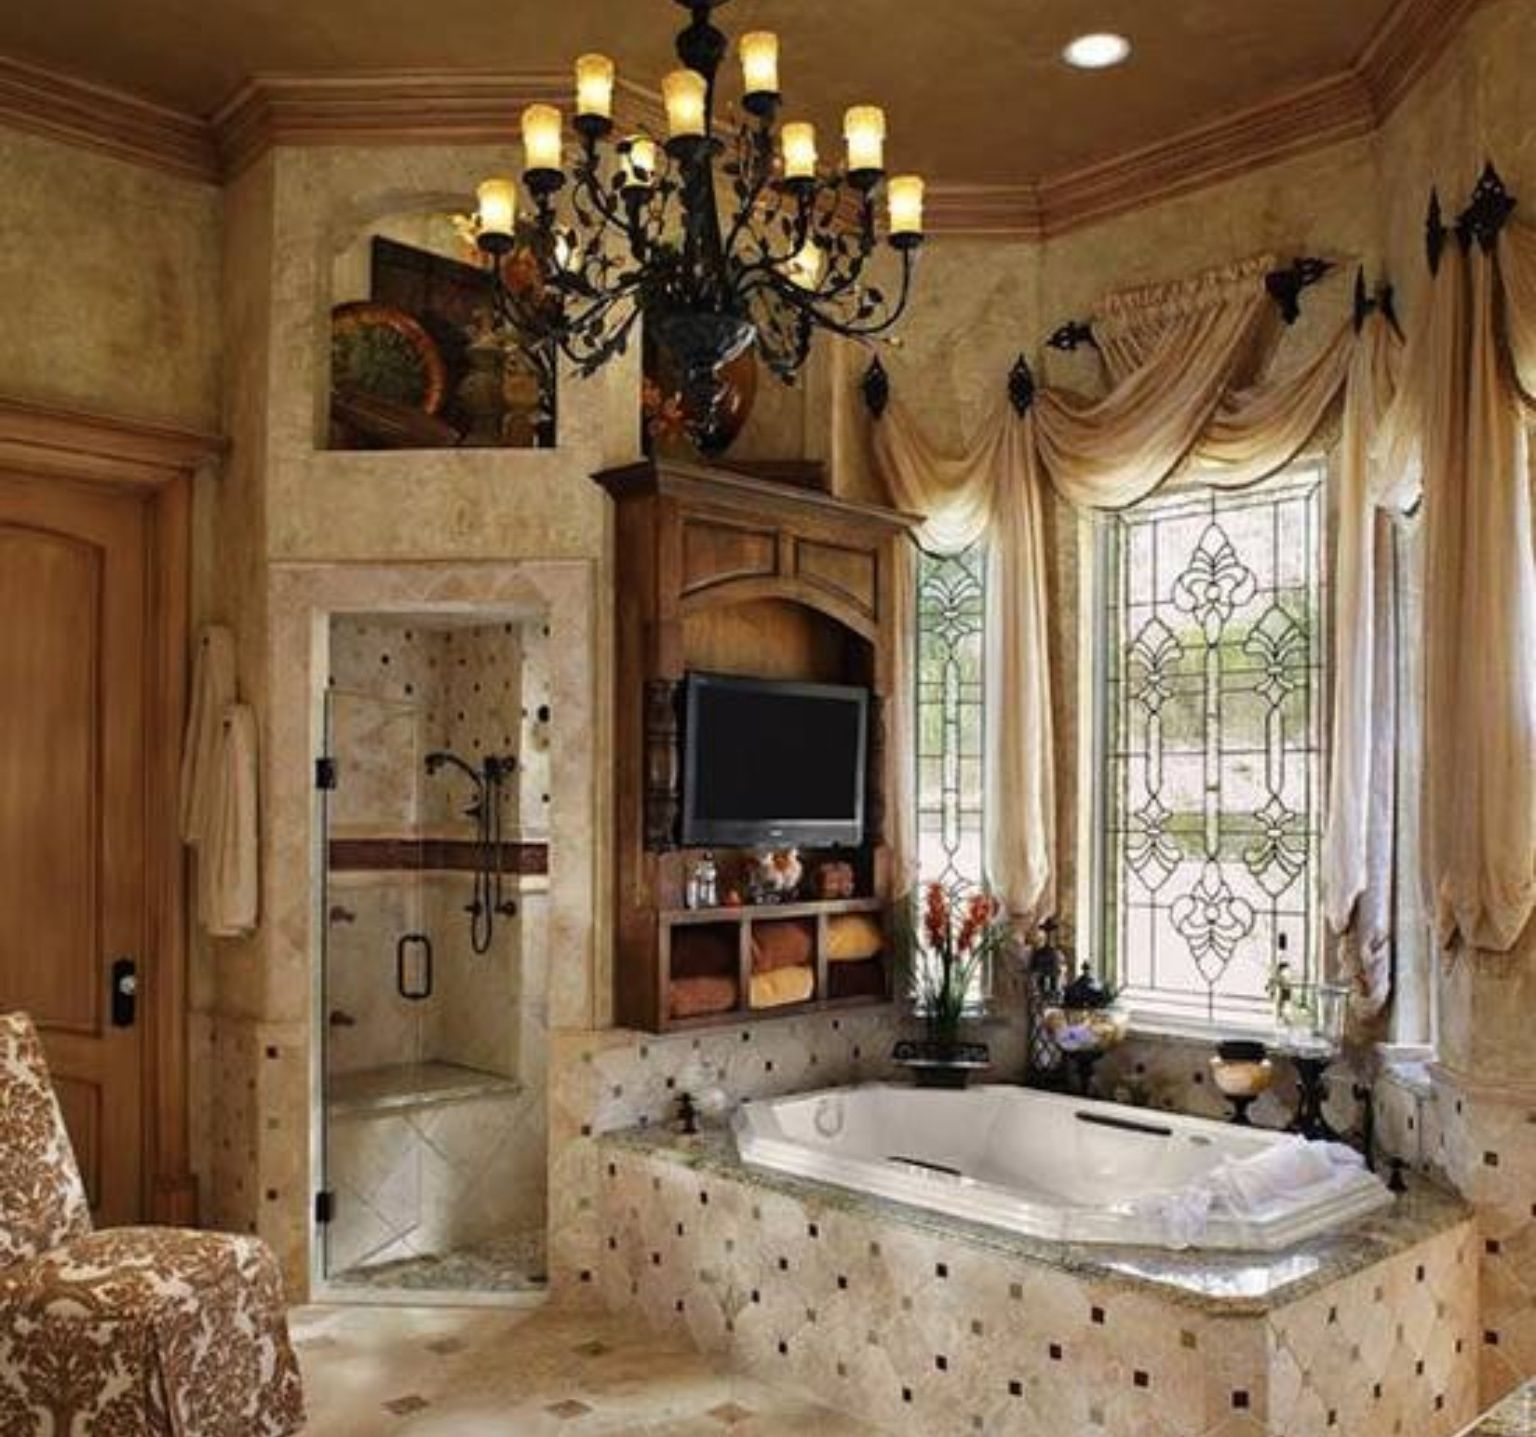 Gorgeous Bathroom Window Treatments !